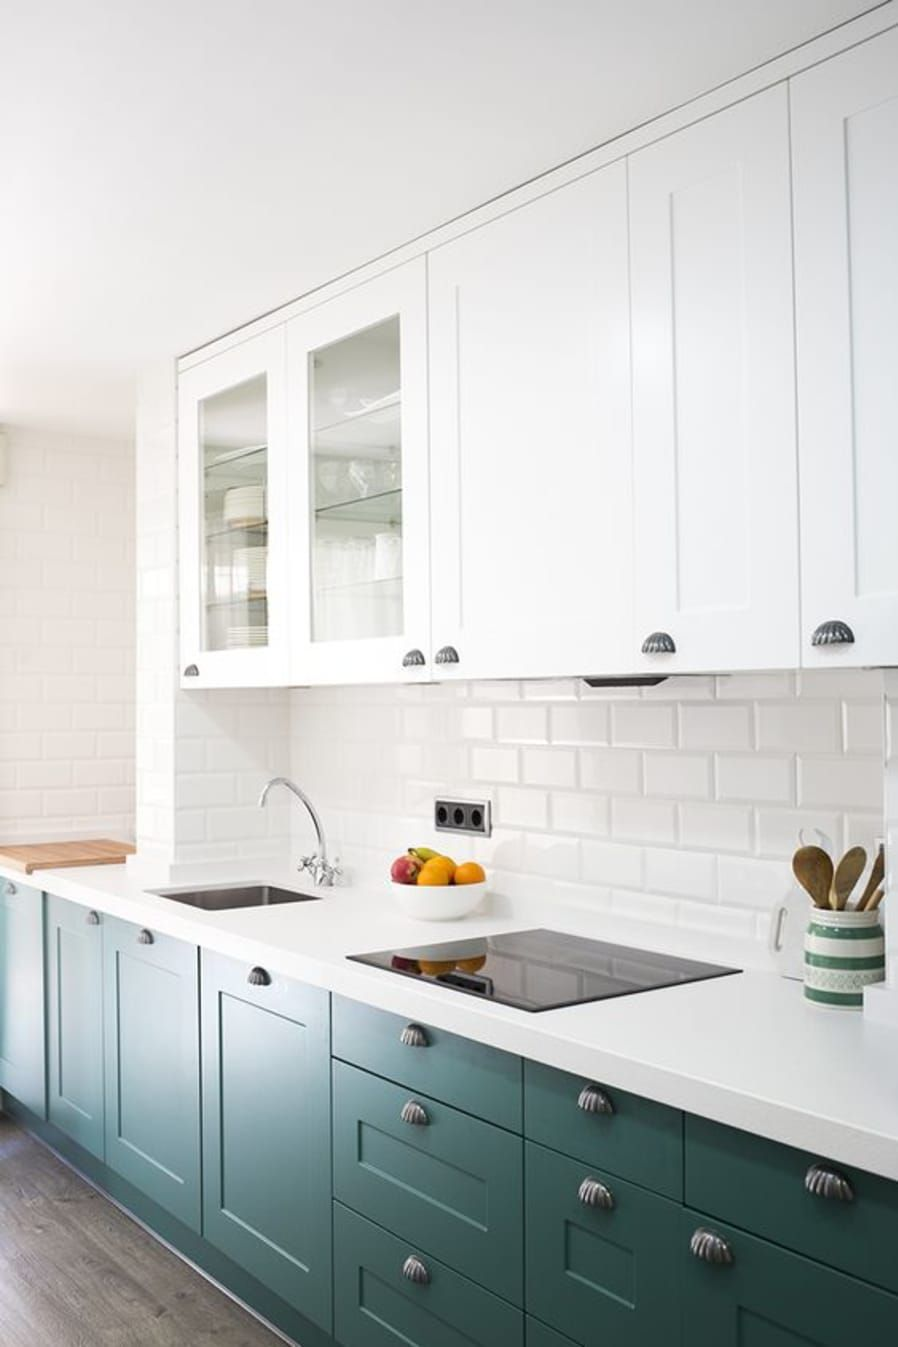 The Kitchen Cabinet Color I M Obsessed With In 2020 White Kitchen Remodeling Kitchen Design Large Kitchen Cabinets